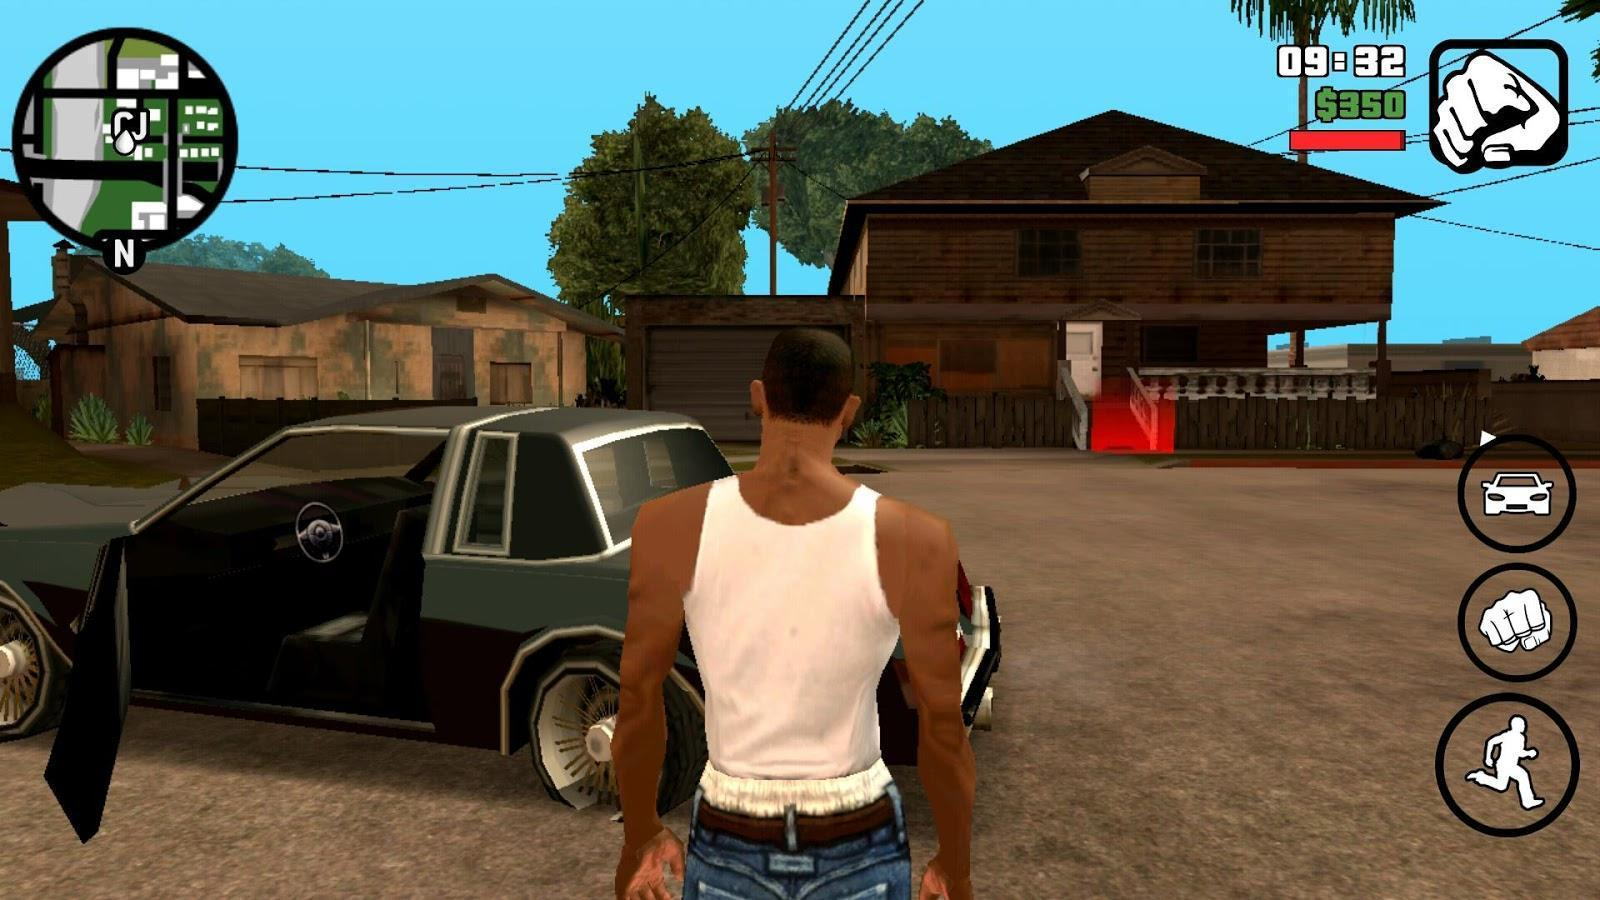 Top Gta San Andreas Guide For Android Apk Download